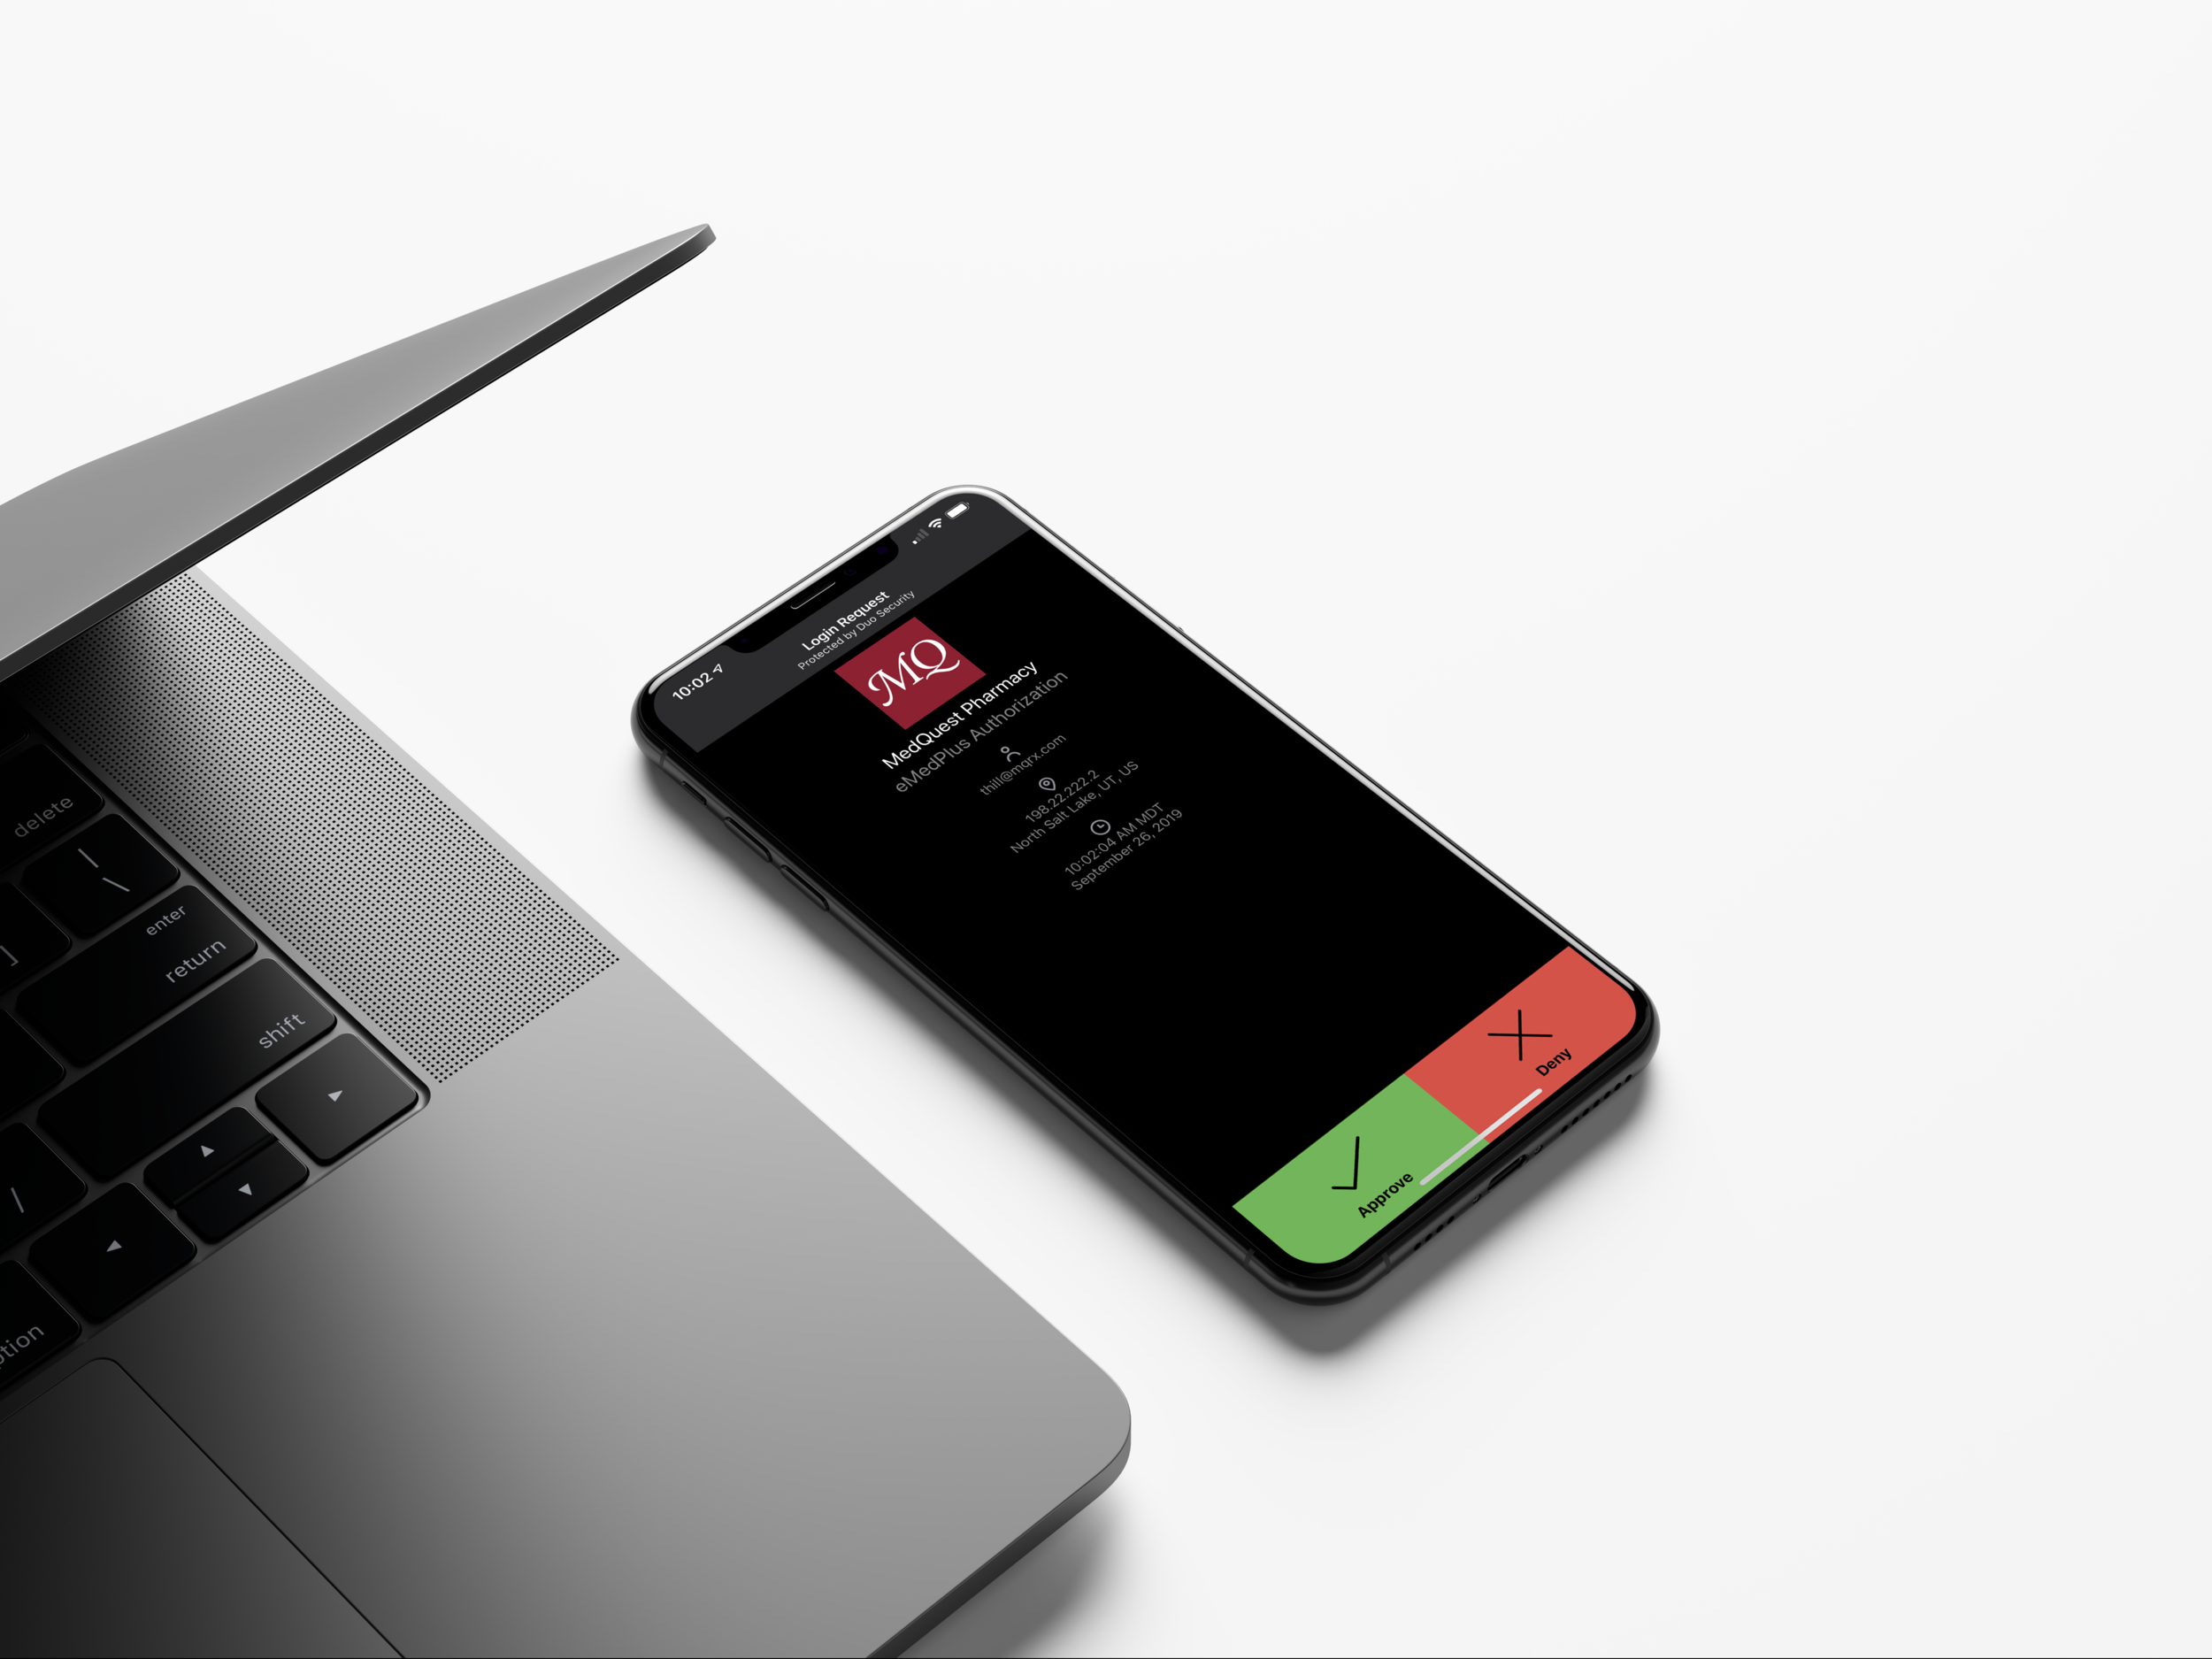 MBP and iPhone Mockup - DUO.png